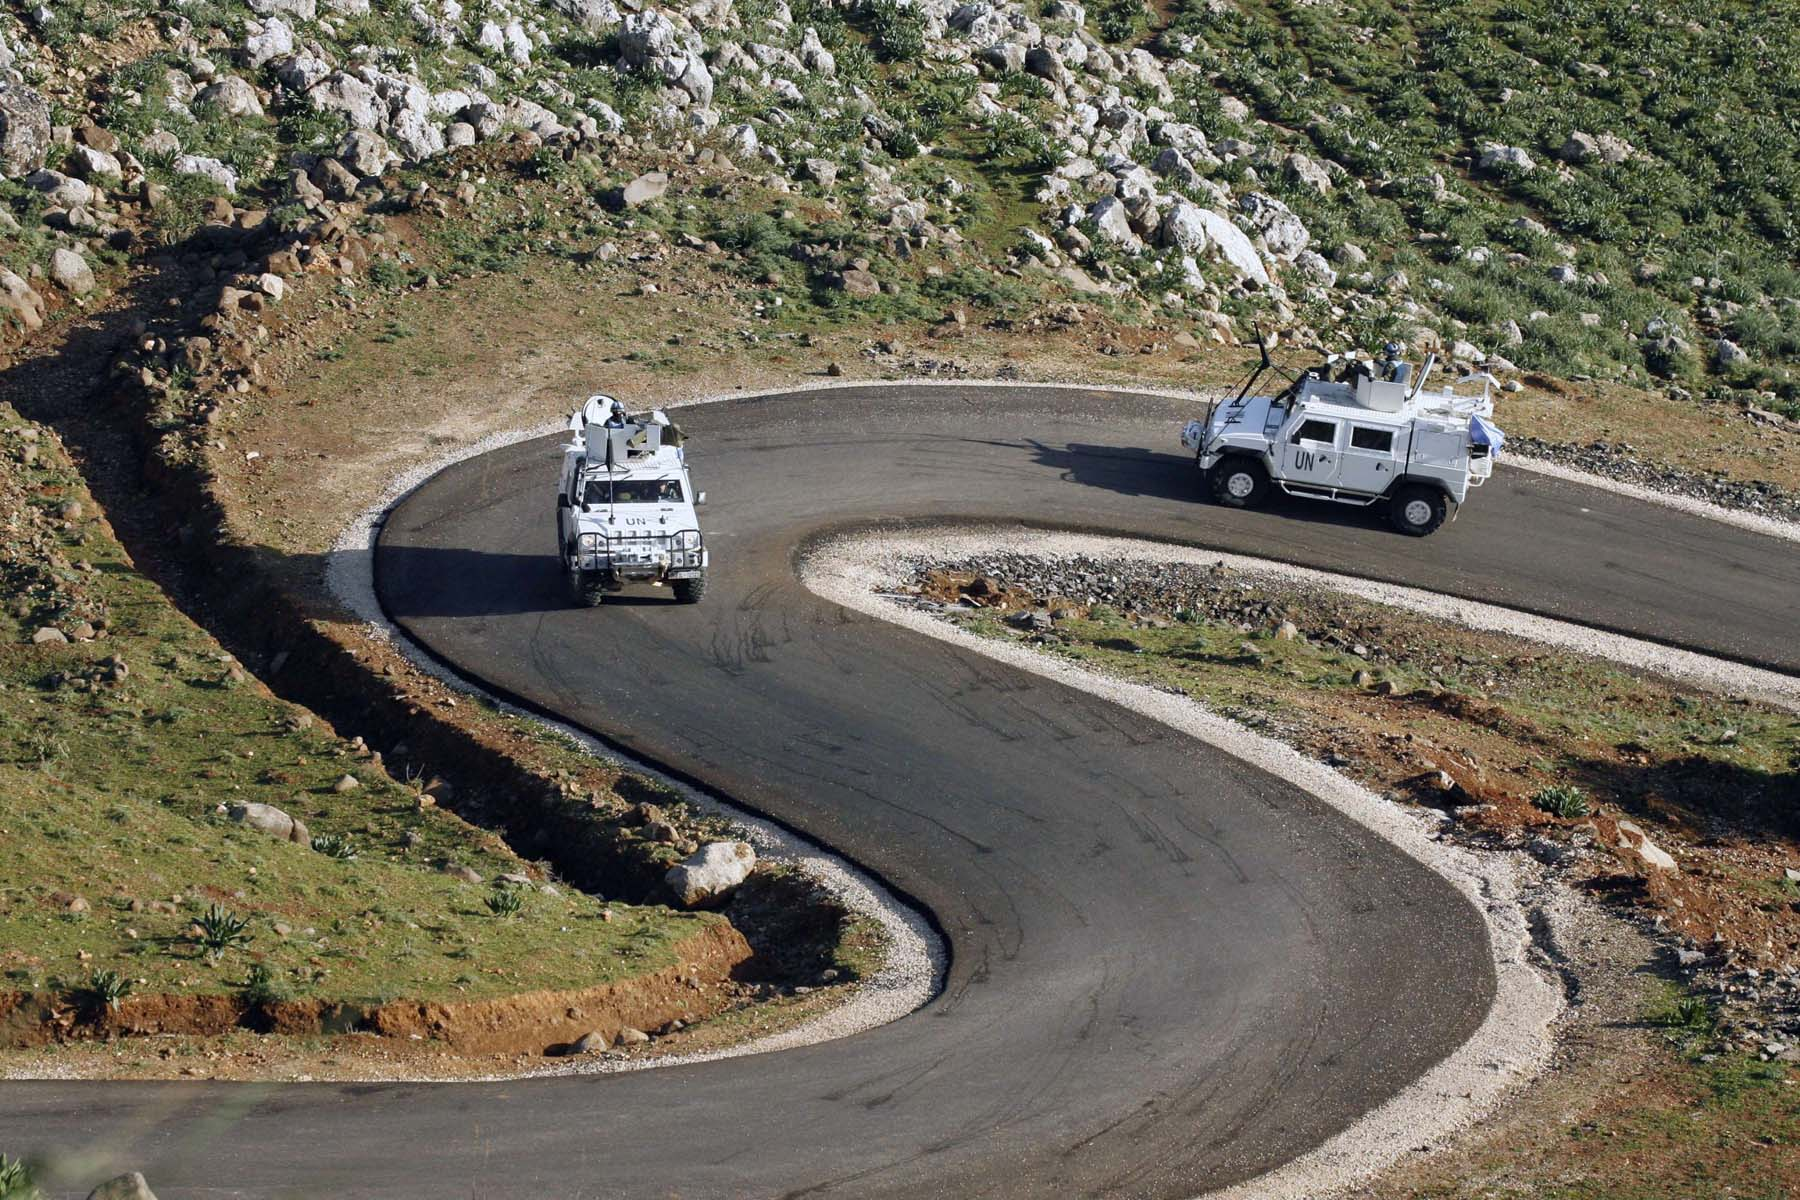 A winding path. Peacekeepers of the UN Interim Force in Lebanon drive their vehicles on a road near al-Majidiyah in southern Lebanon.  (AFP)